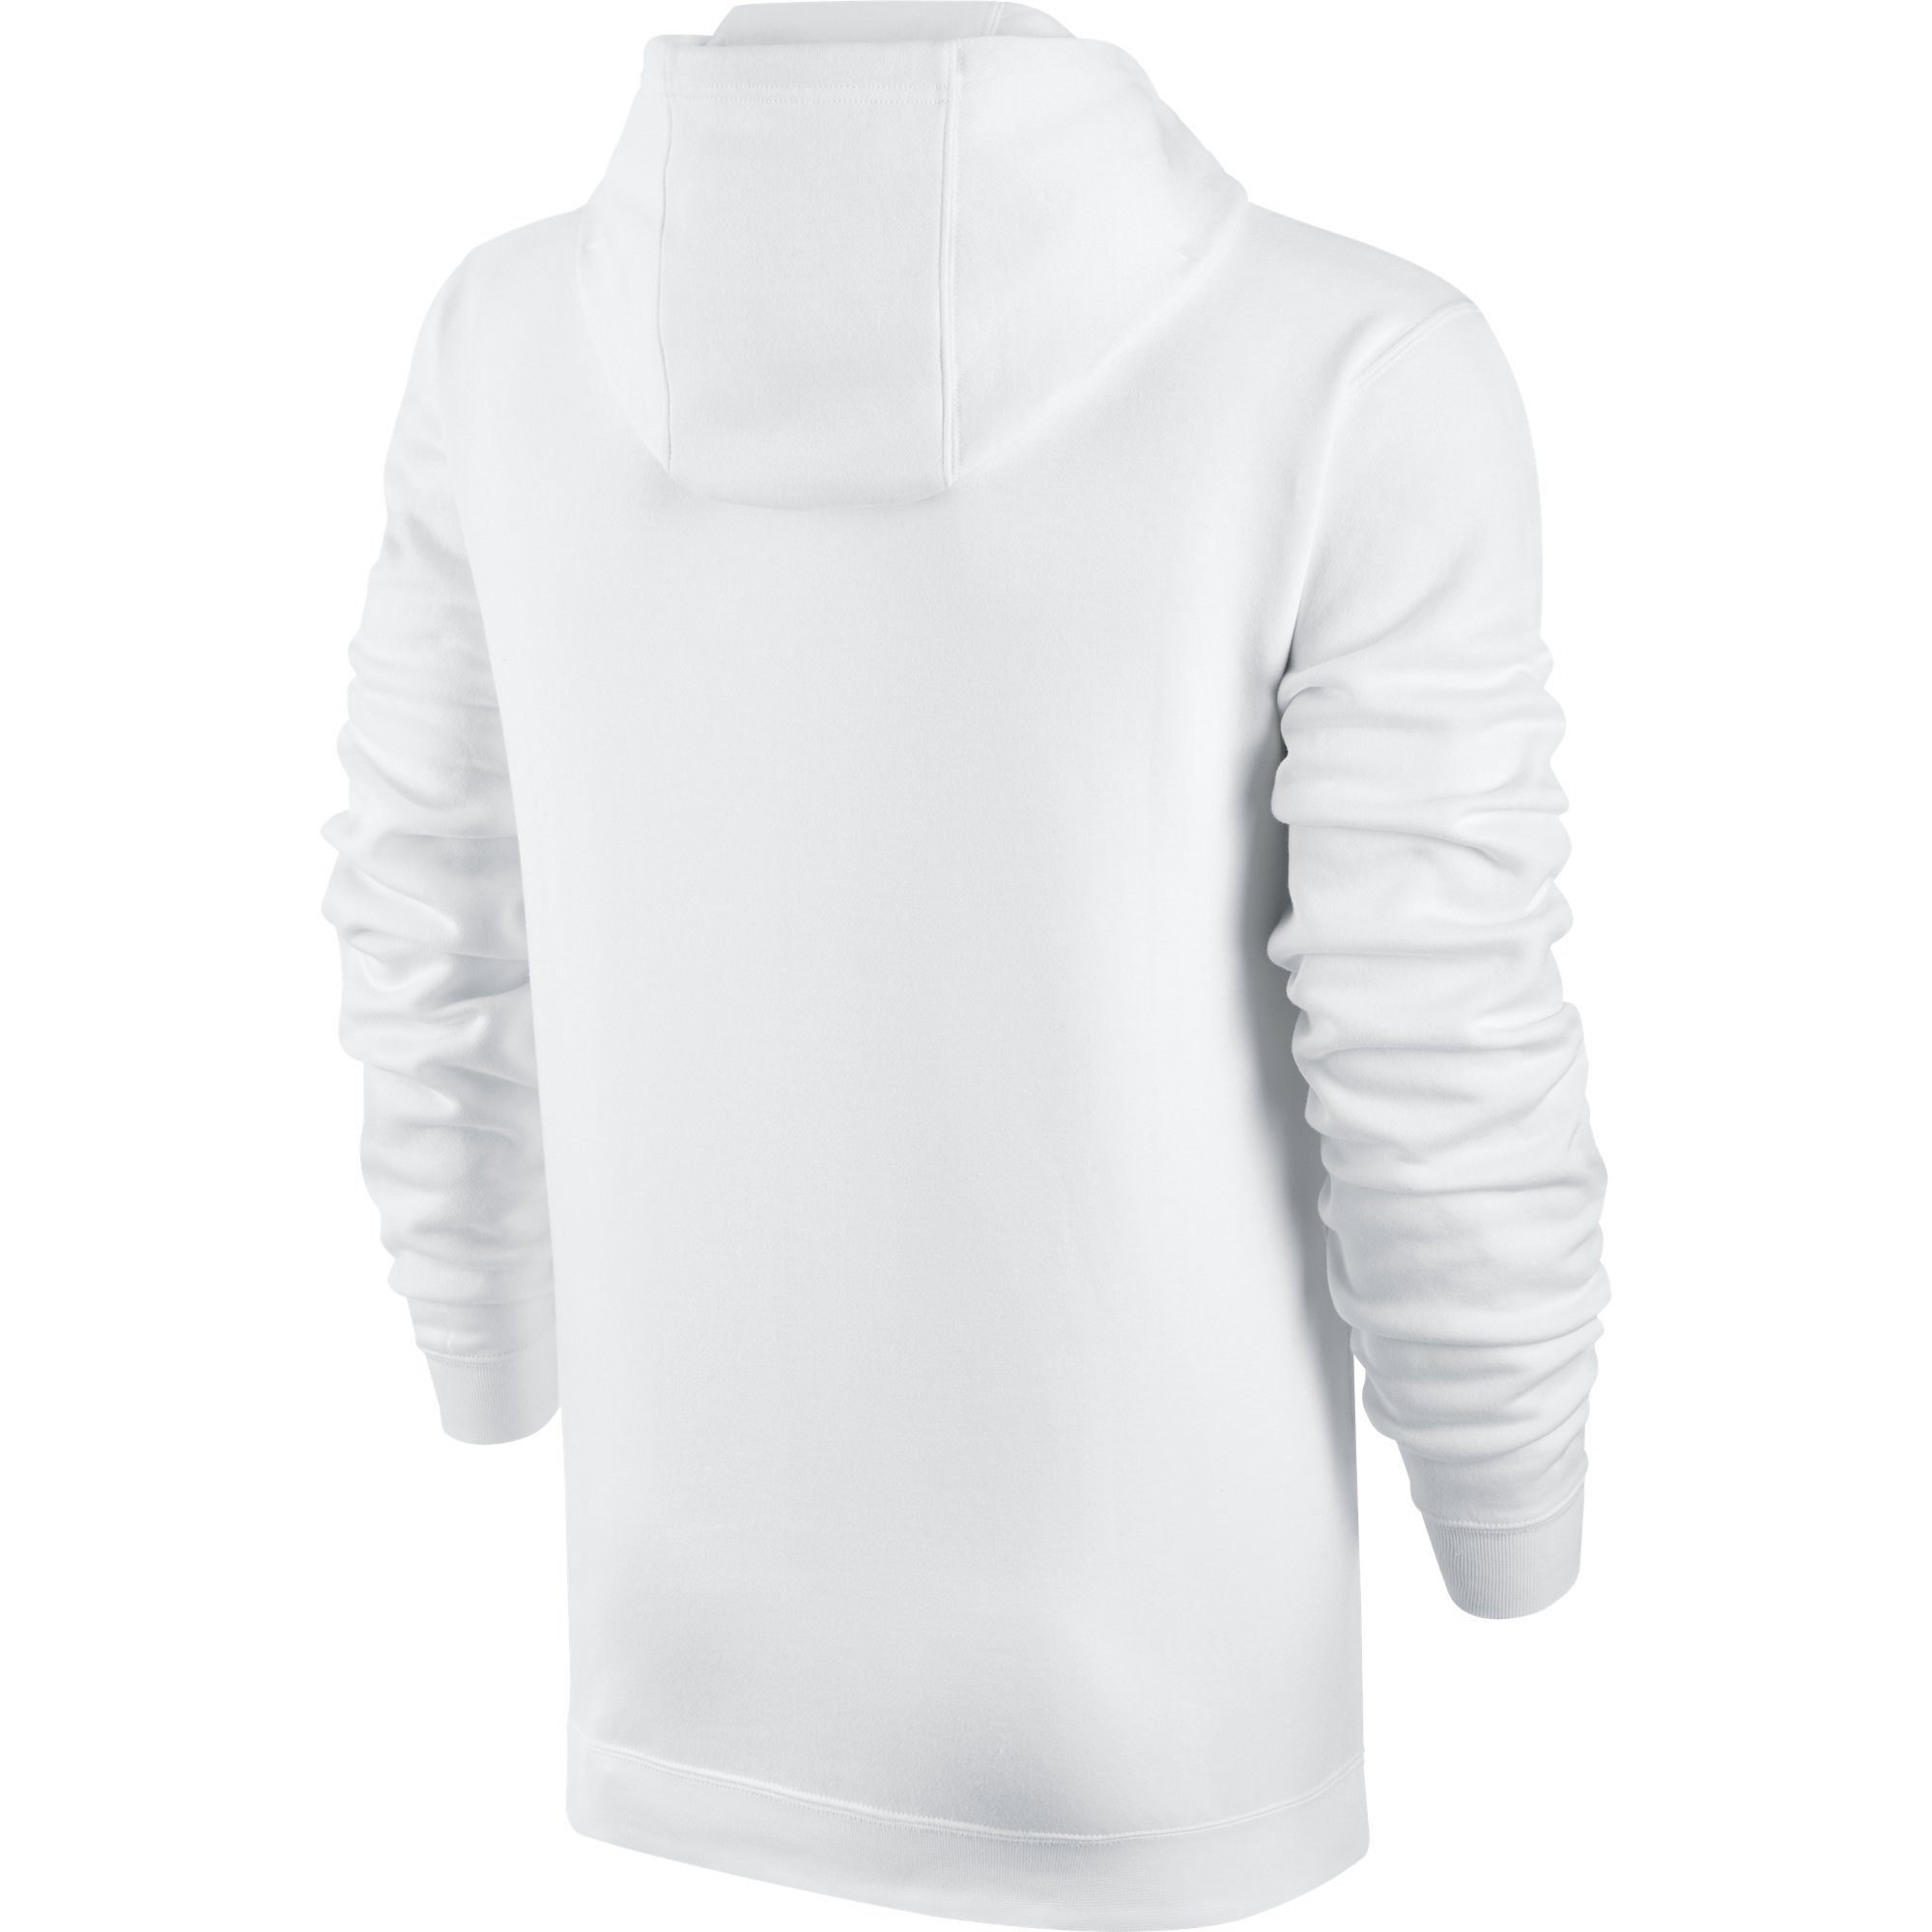 Men's Nike Sportswear Club Pullover Hoodie, Fleece Sweatshirt for Men with Paneled Hood, White/White/Black, XS by Nike (Image #2)